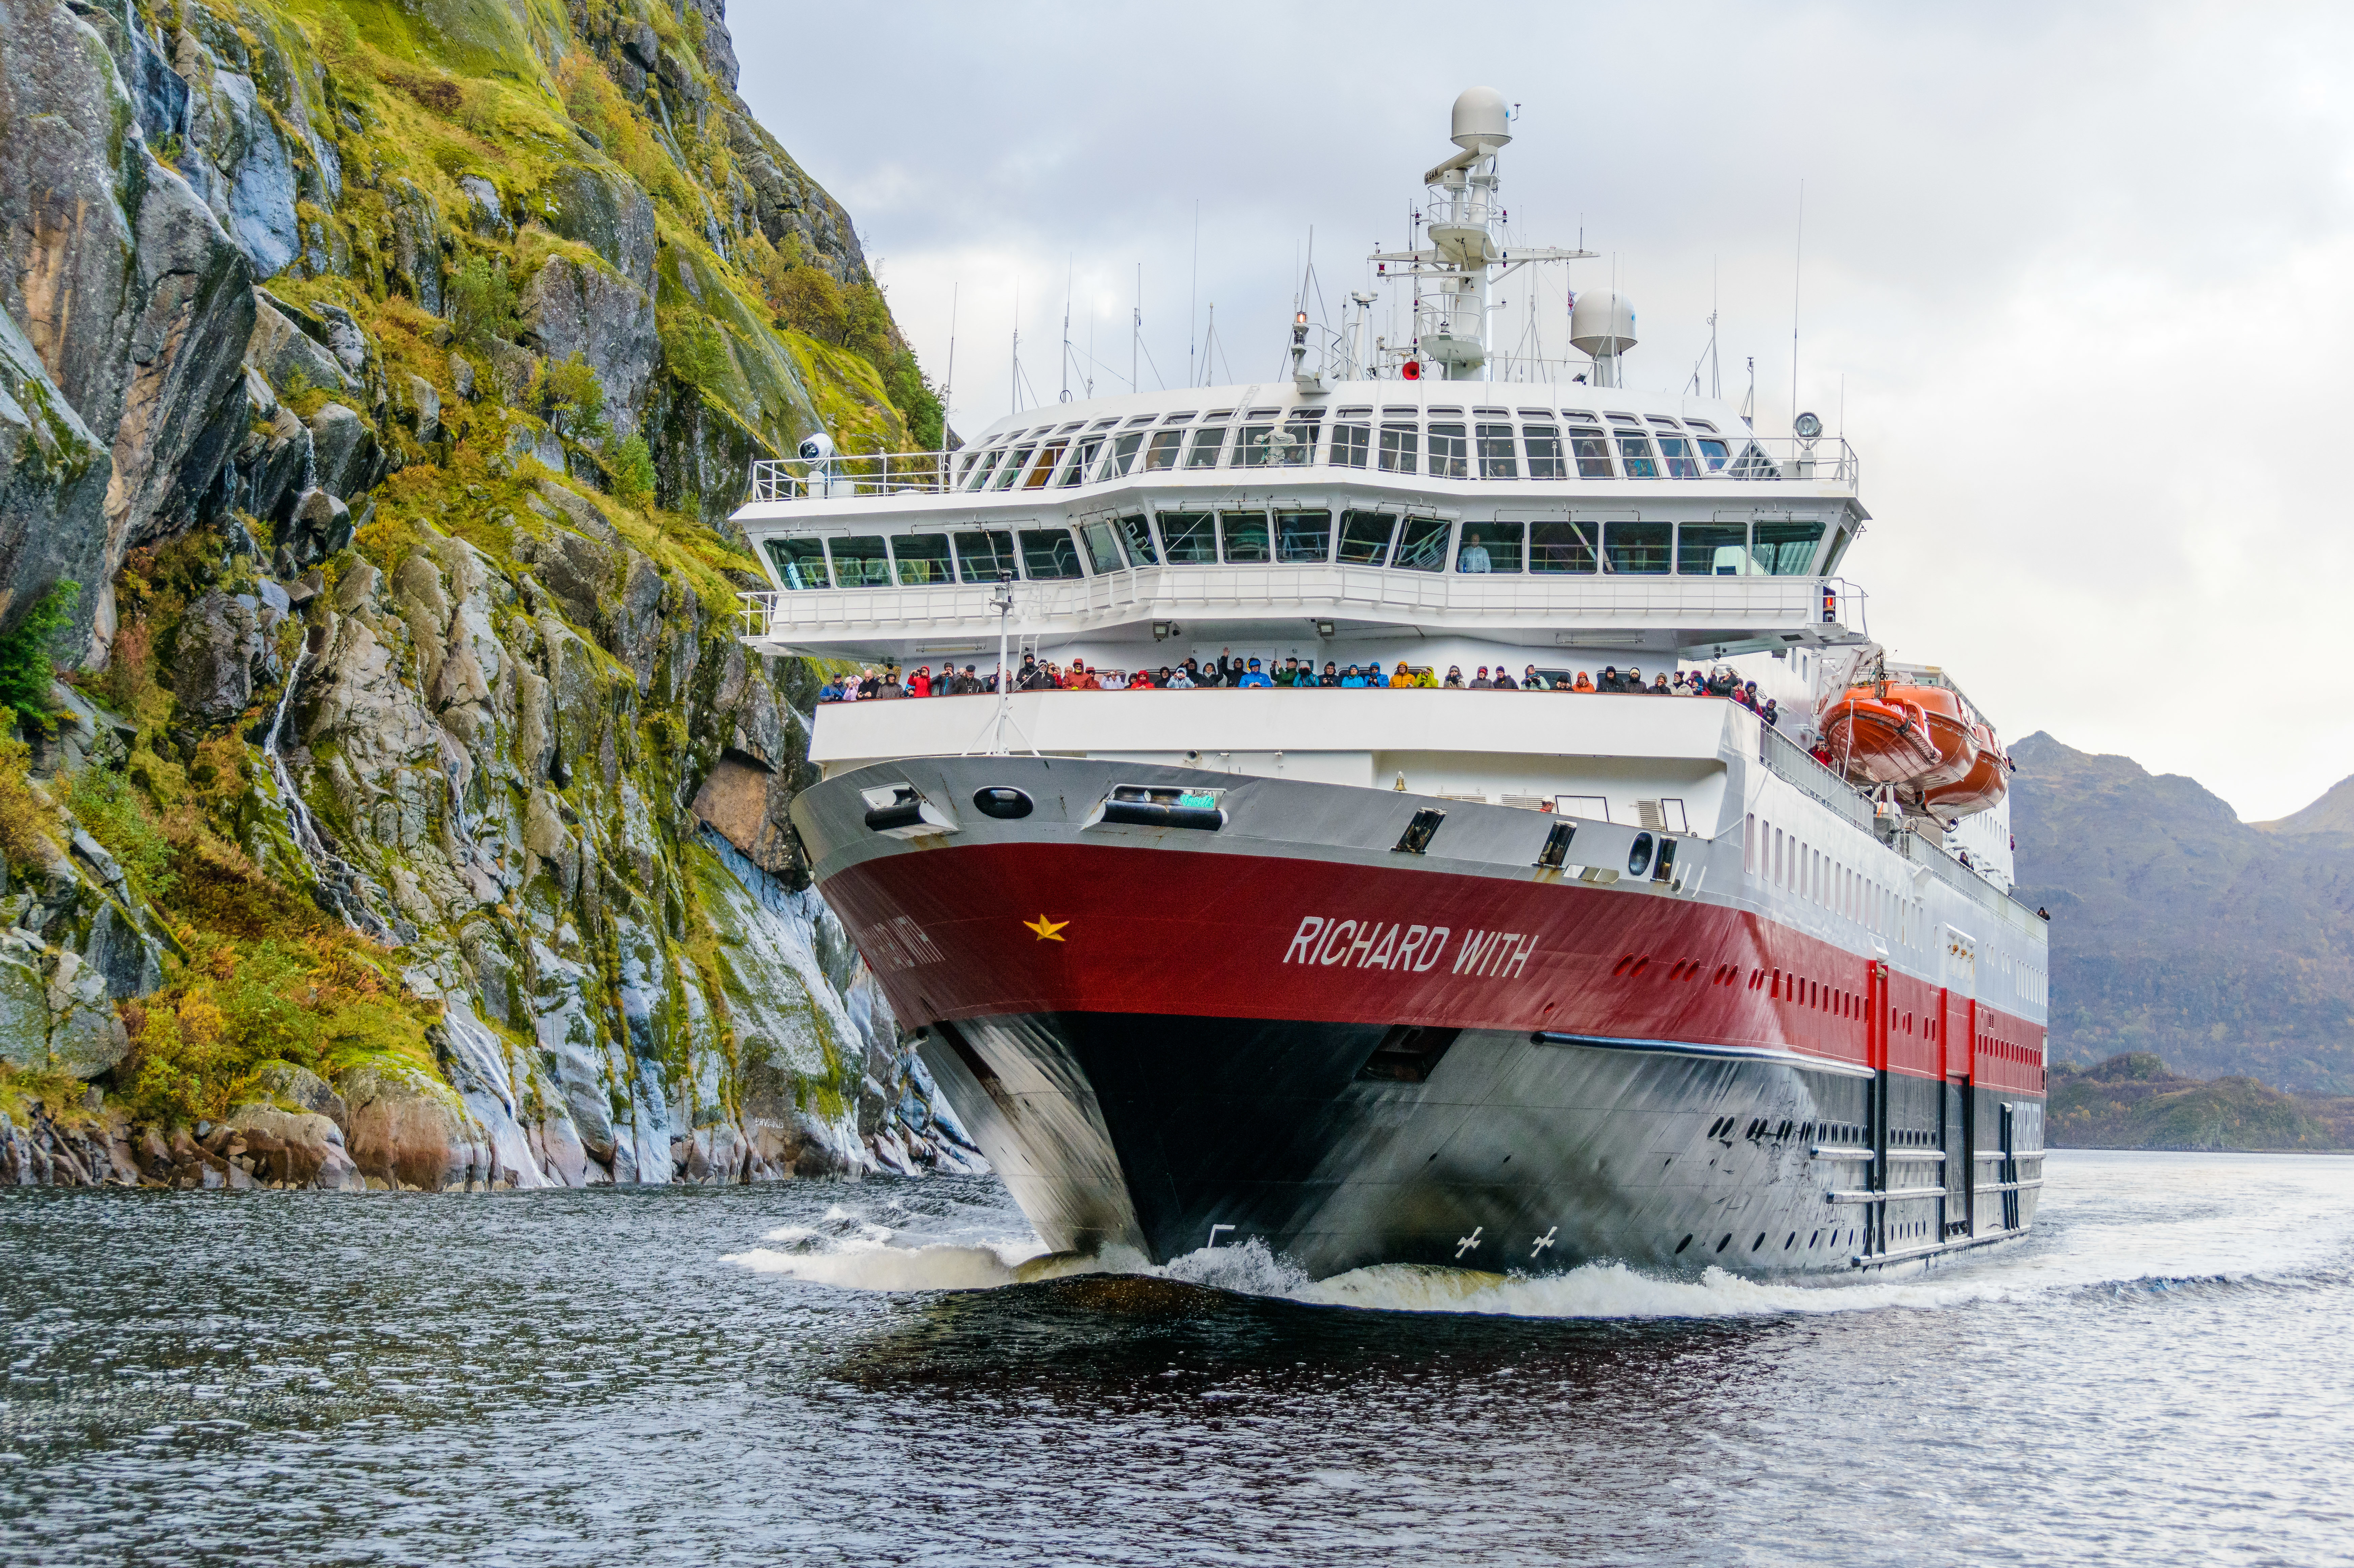 Hurtigruten - MS Richard With in Trollfjord